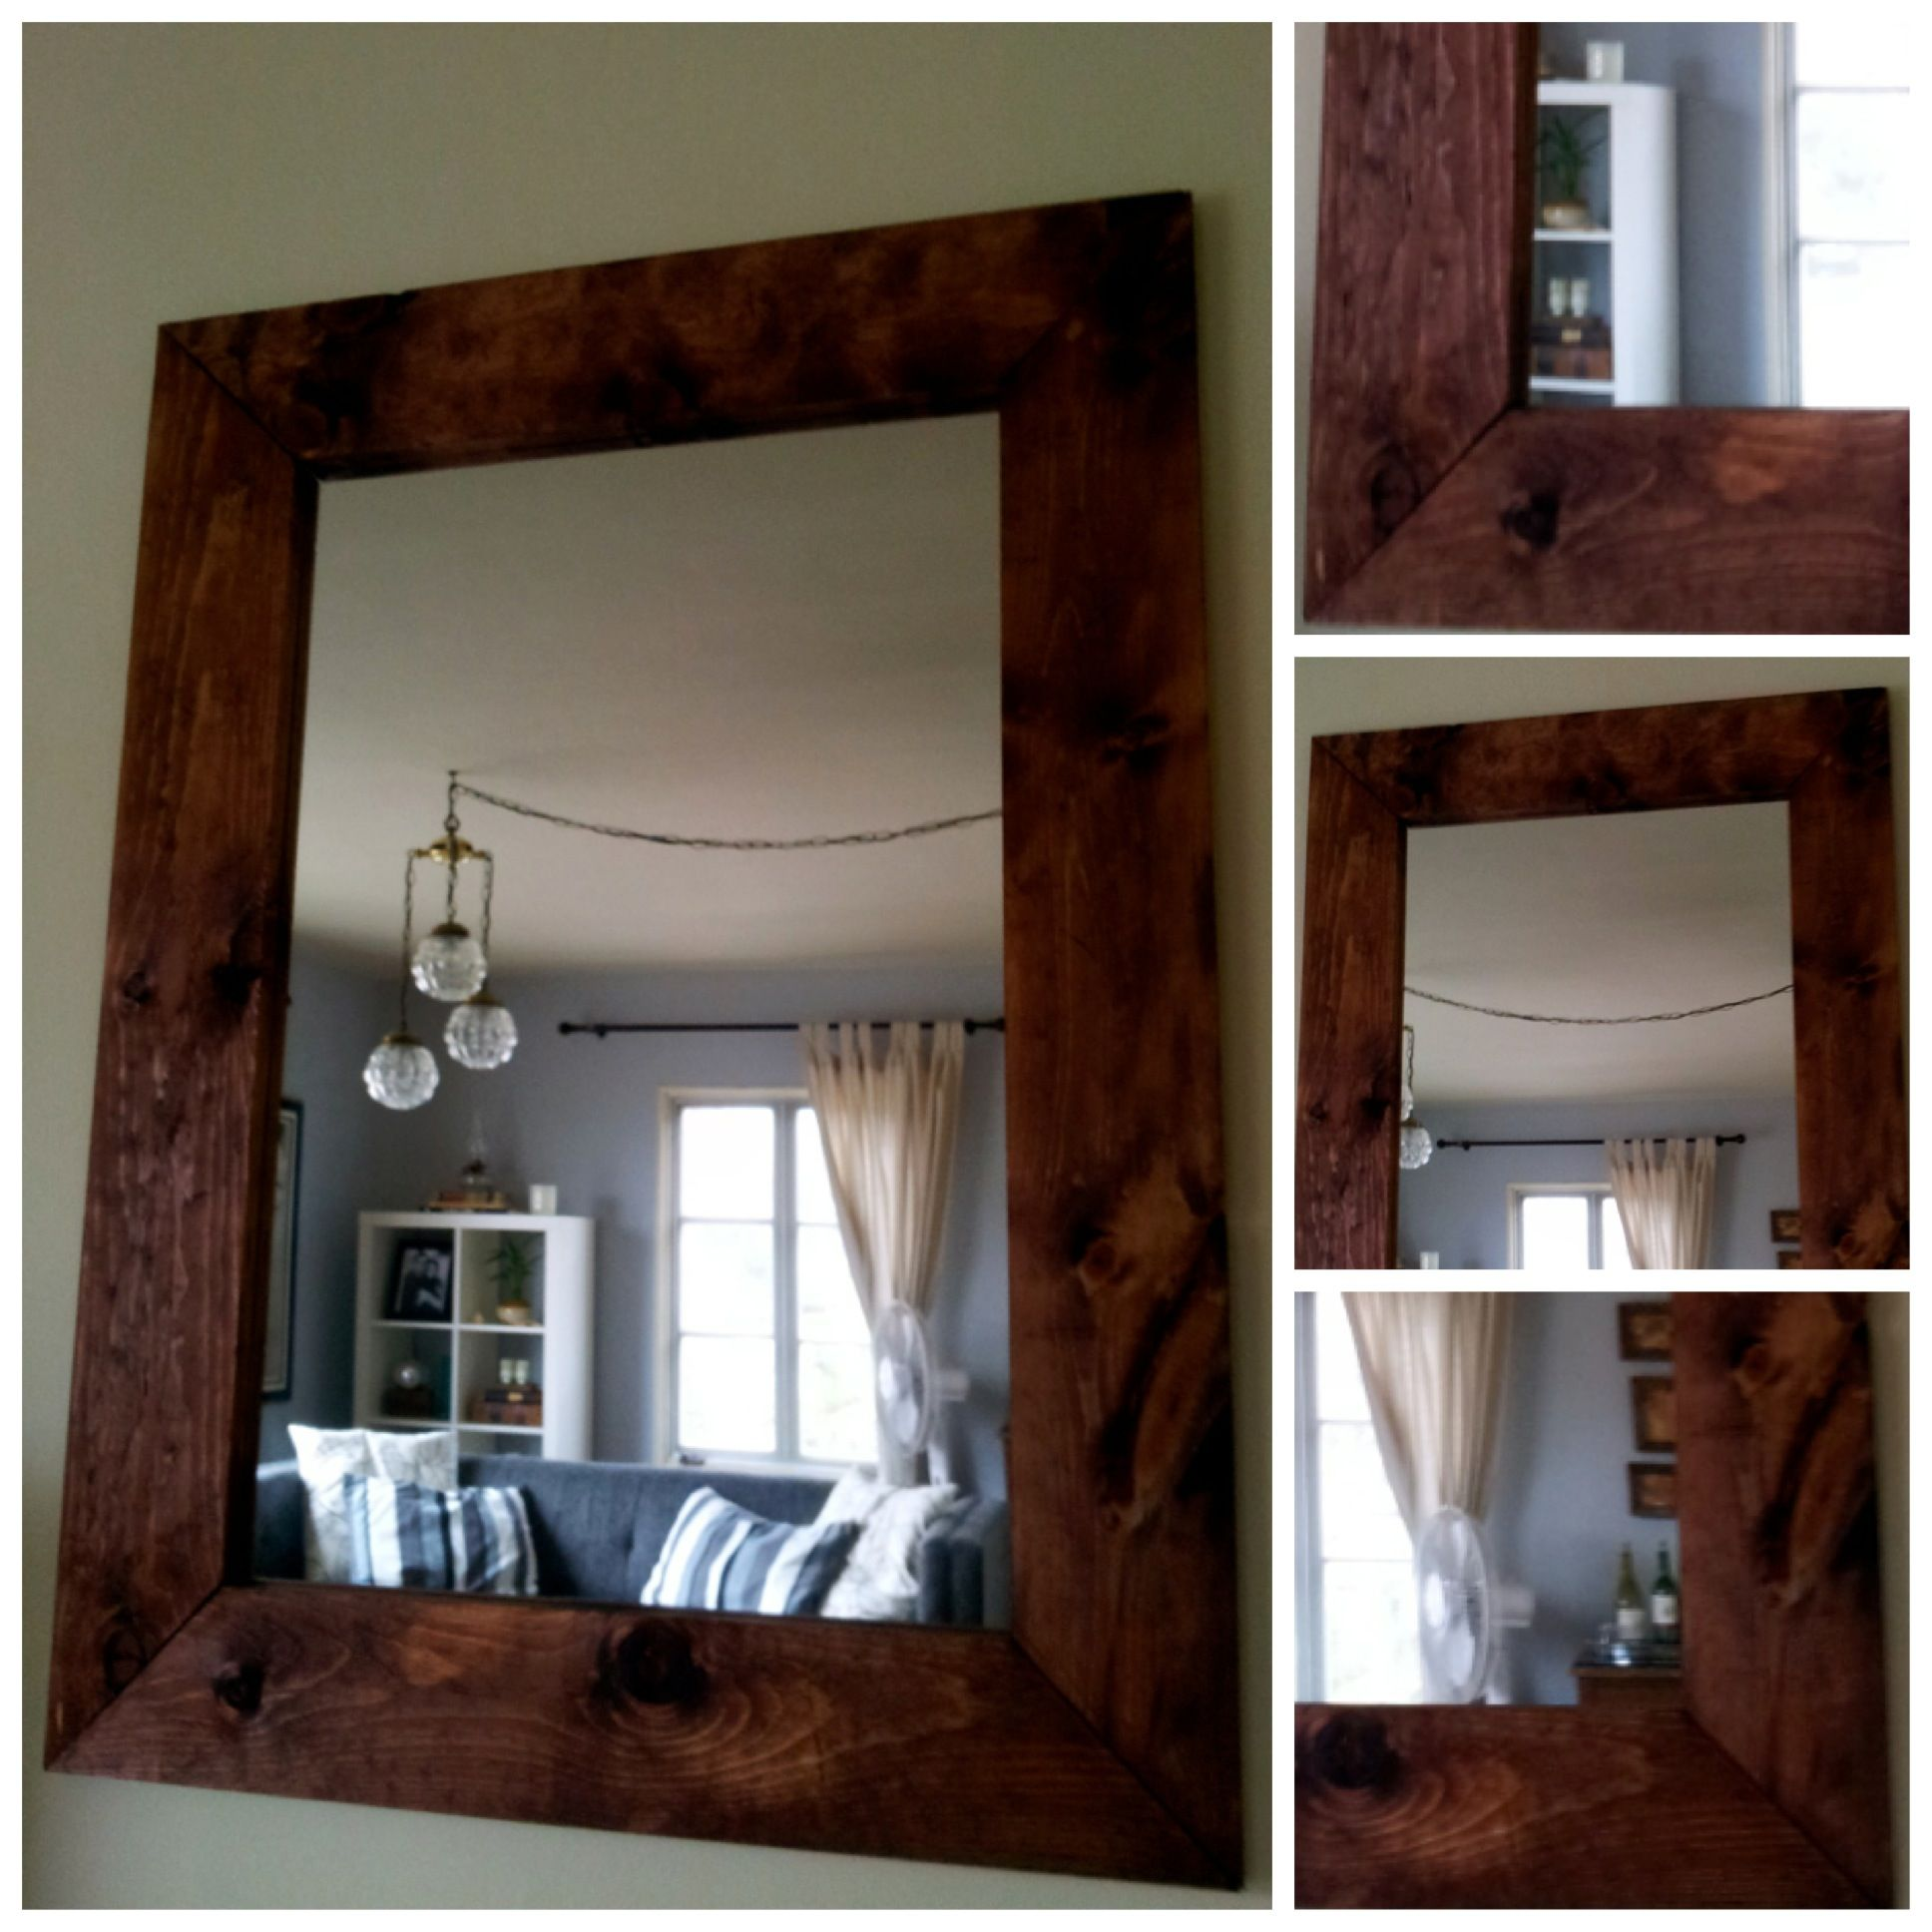 Reclaimed wood mirror from www.MontaneDesigns.com